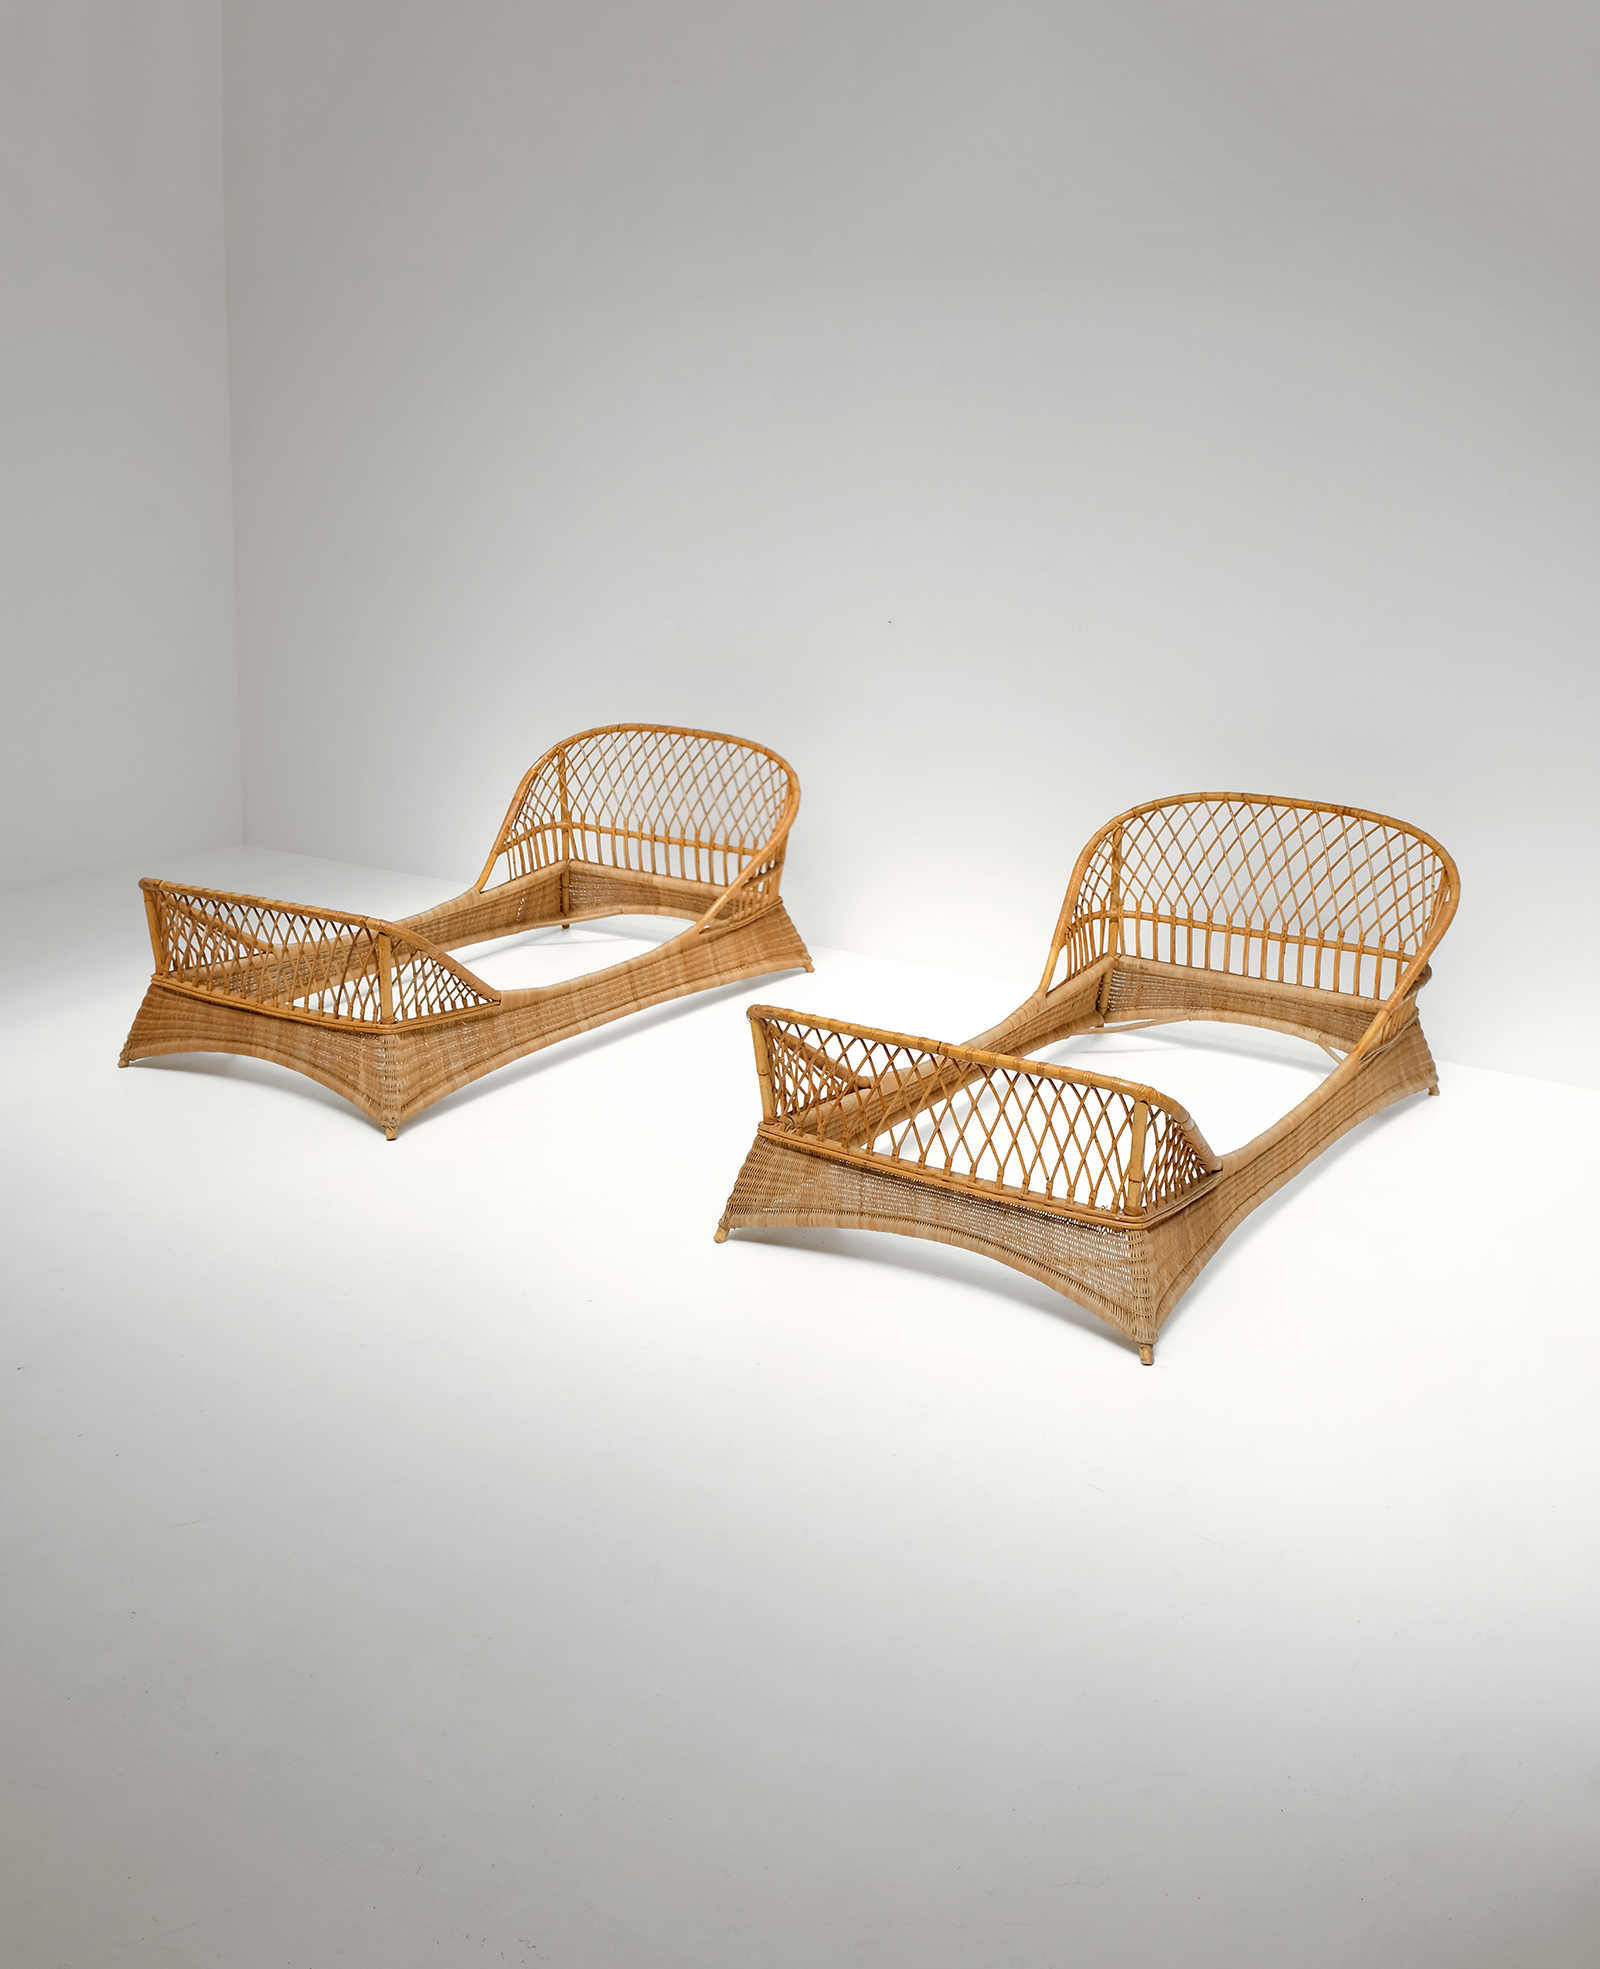 Two 1950s Rattan Daybedsimage 1